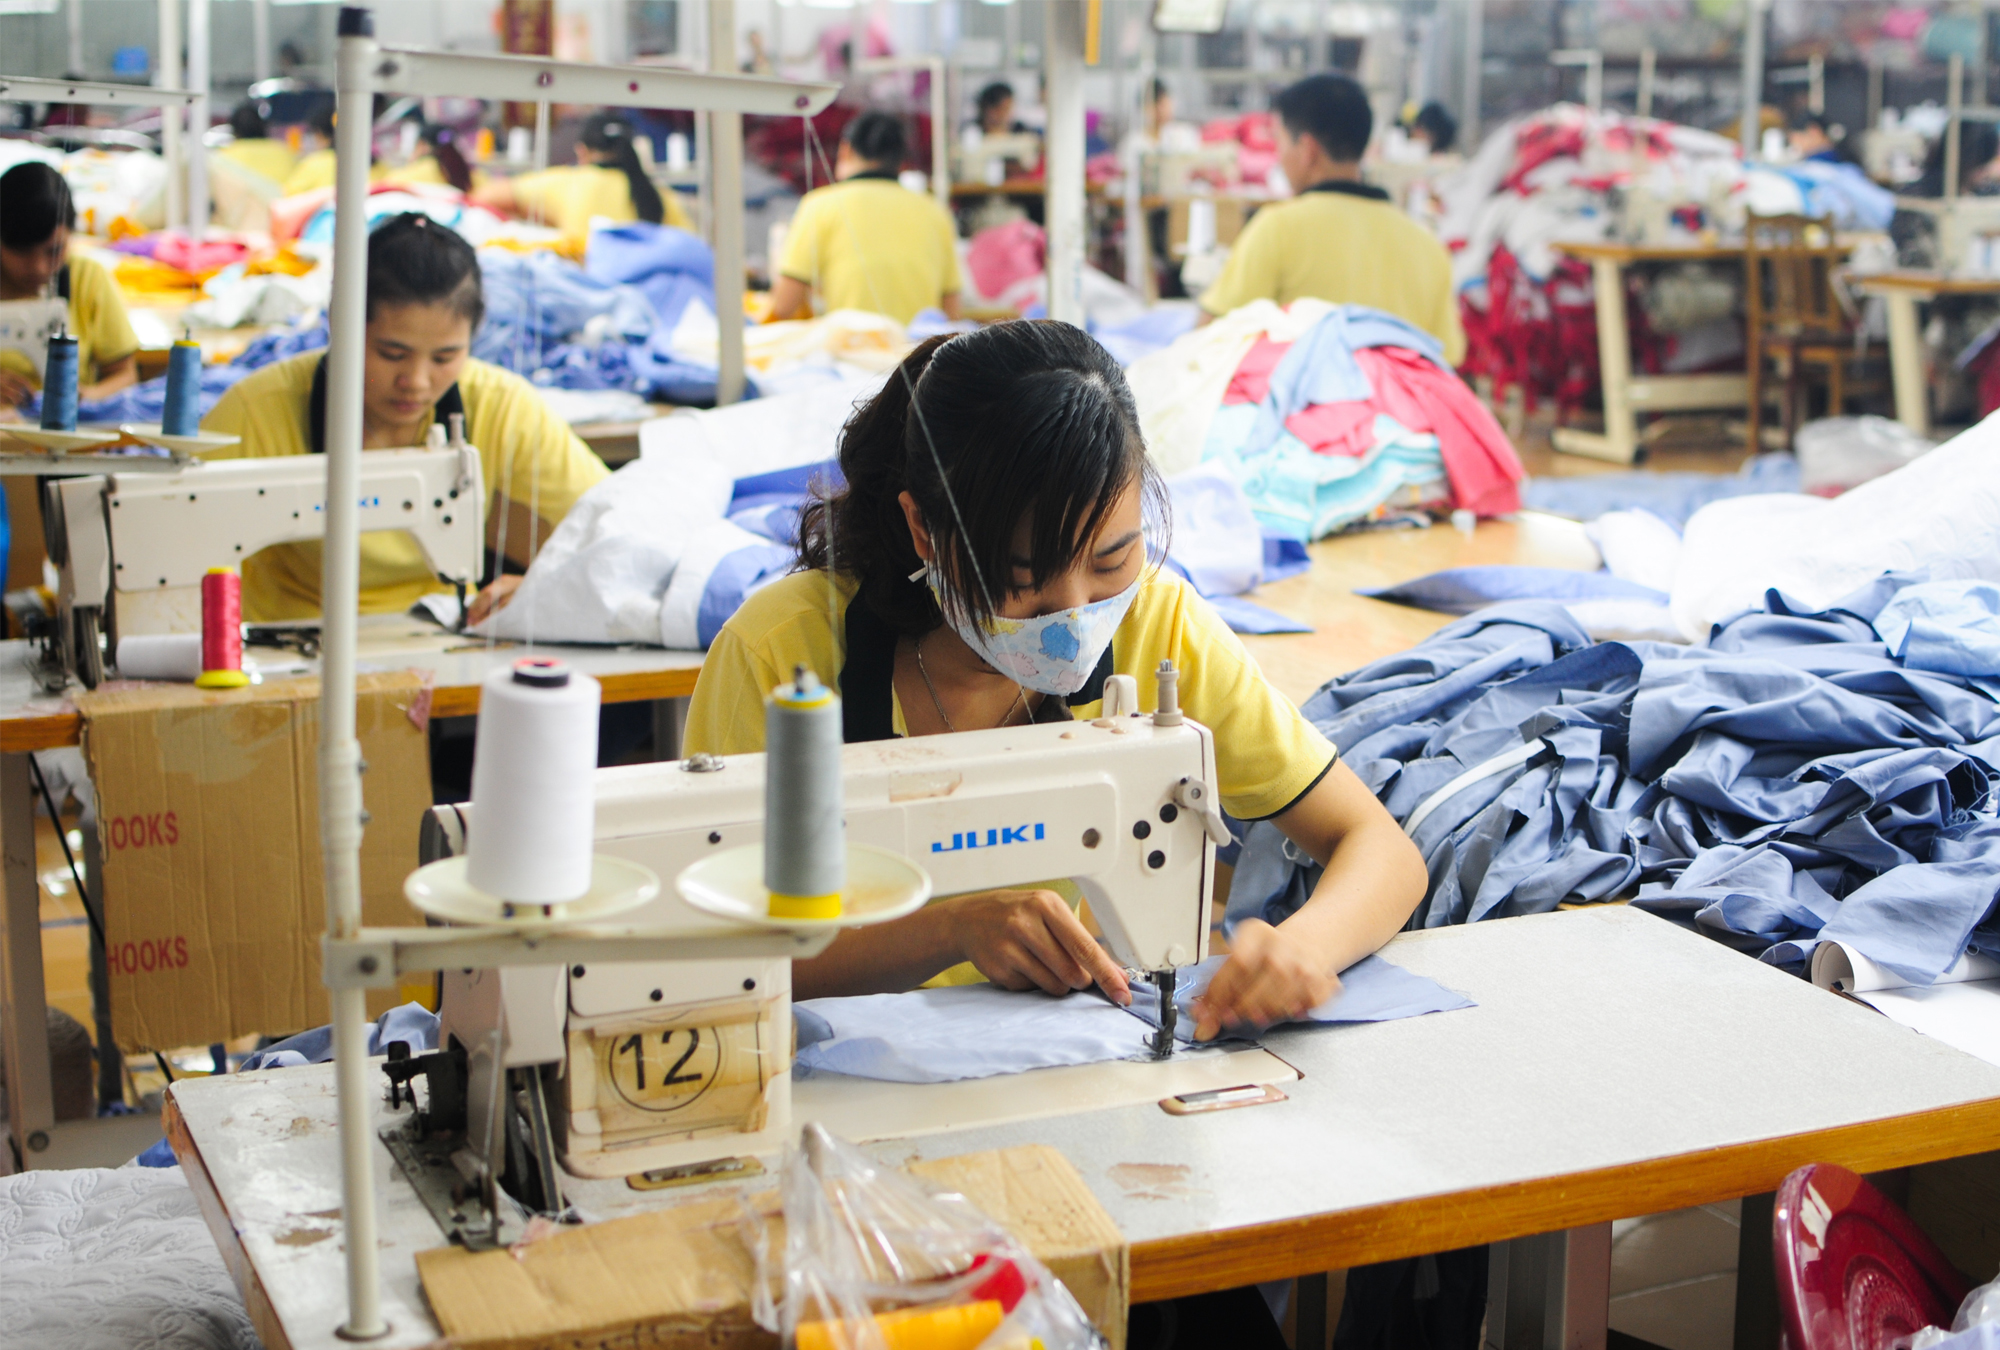 Participation and Regulatory Compliance Amongst Firms in Vietnam